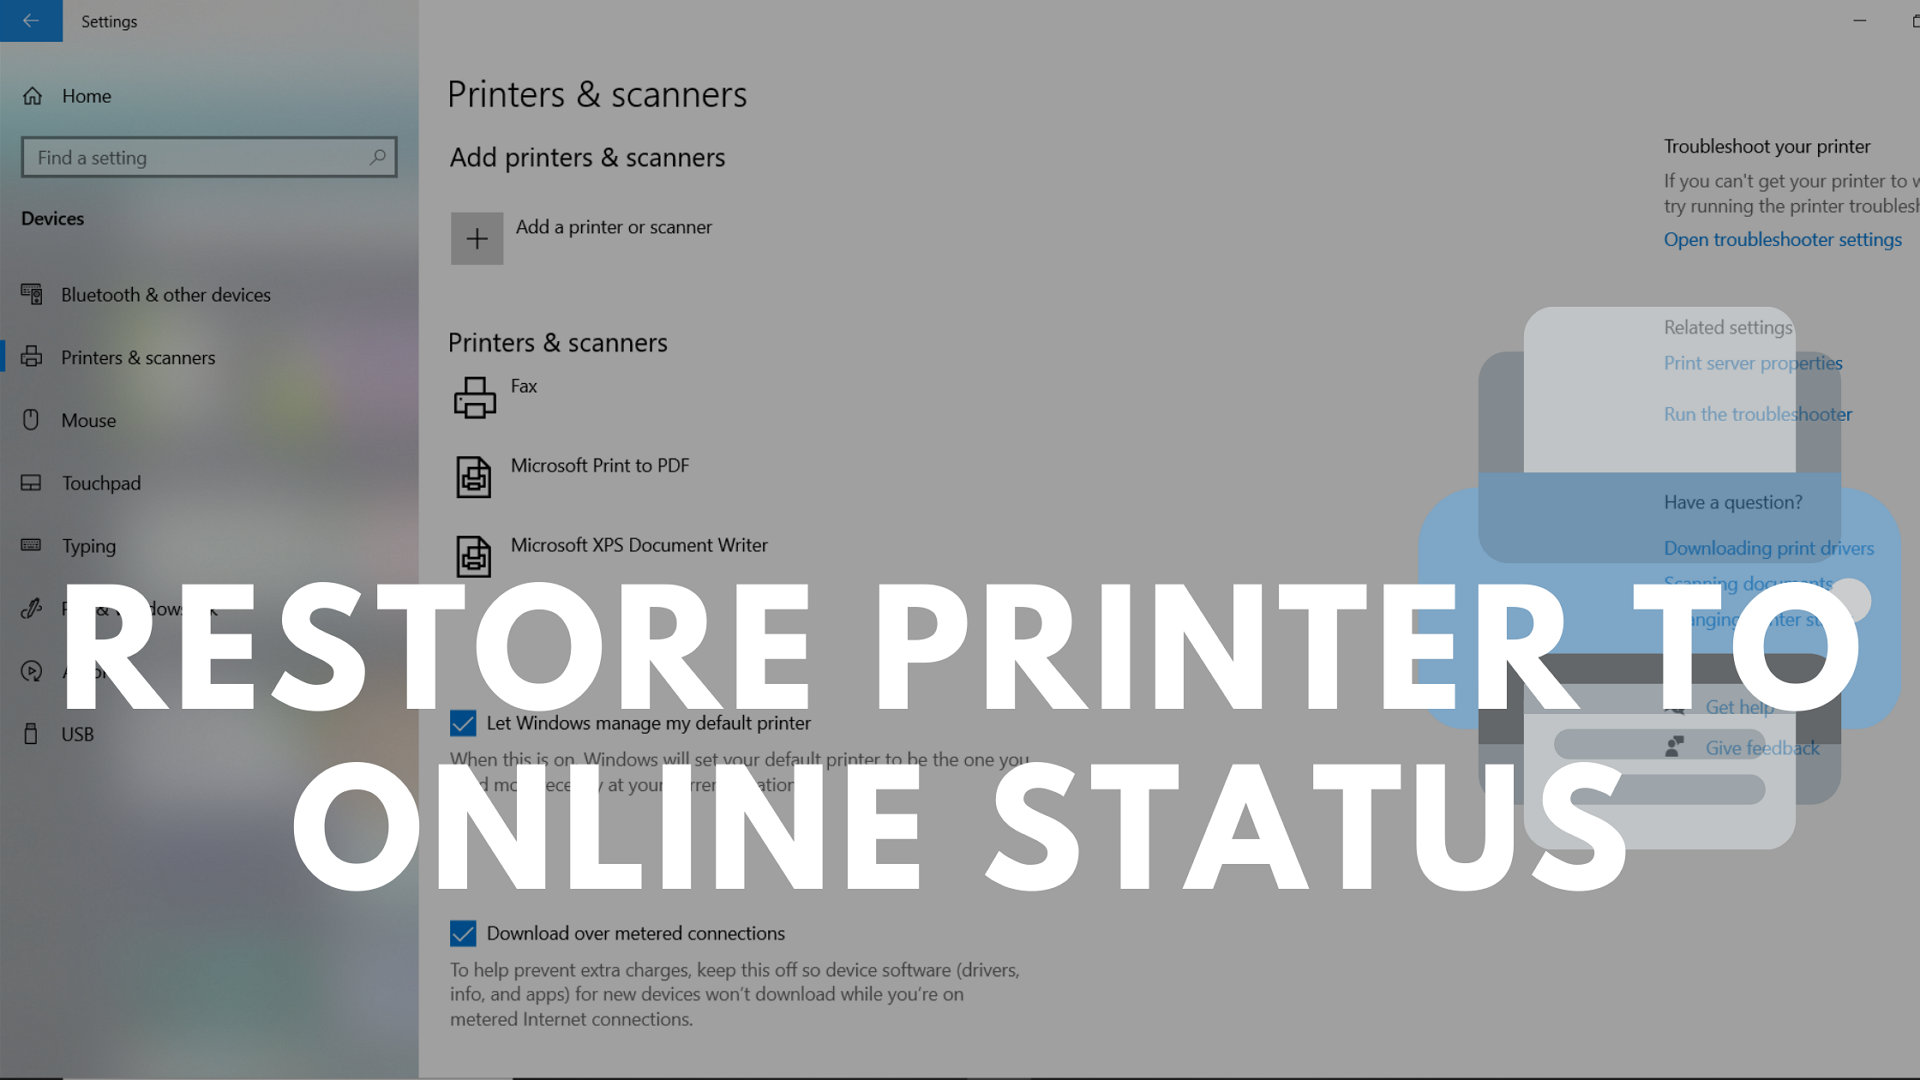 If you often use a printer at your work, you may have noticed that printers on Windows 10 can have both an online and offline status. Naturally,